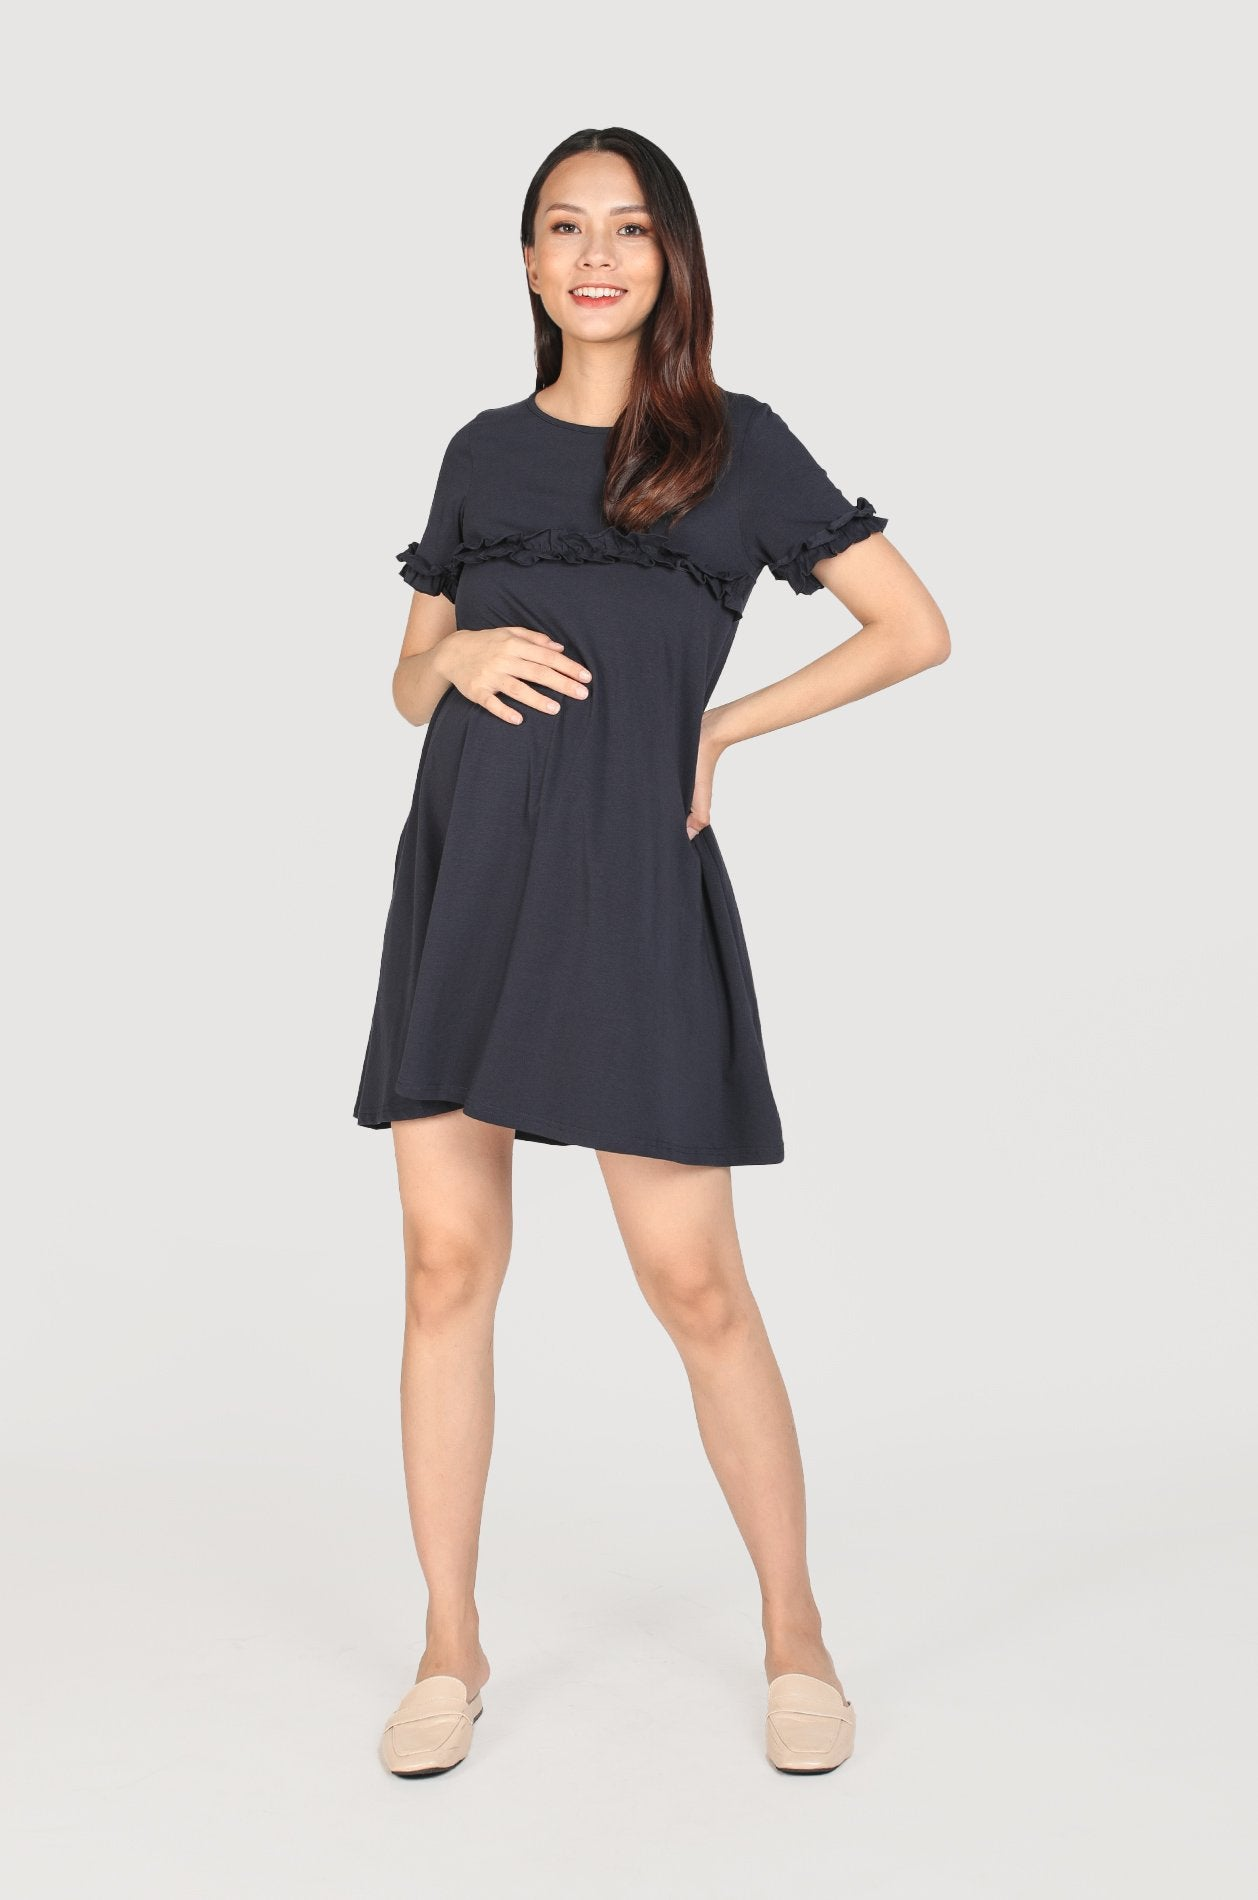 Briana Frills Flare Nursing Dress In Navy Nursing Wear Jump Eat Cry